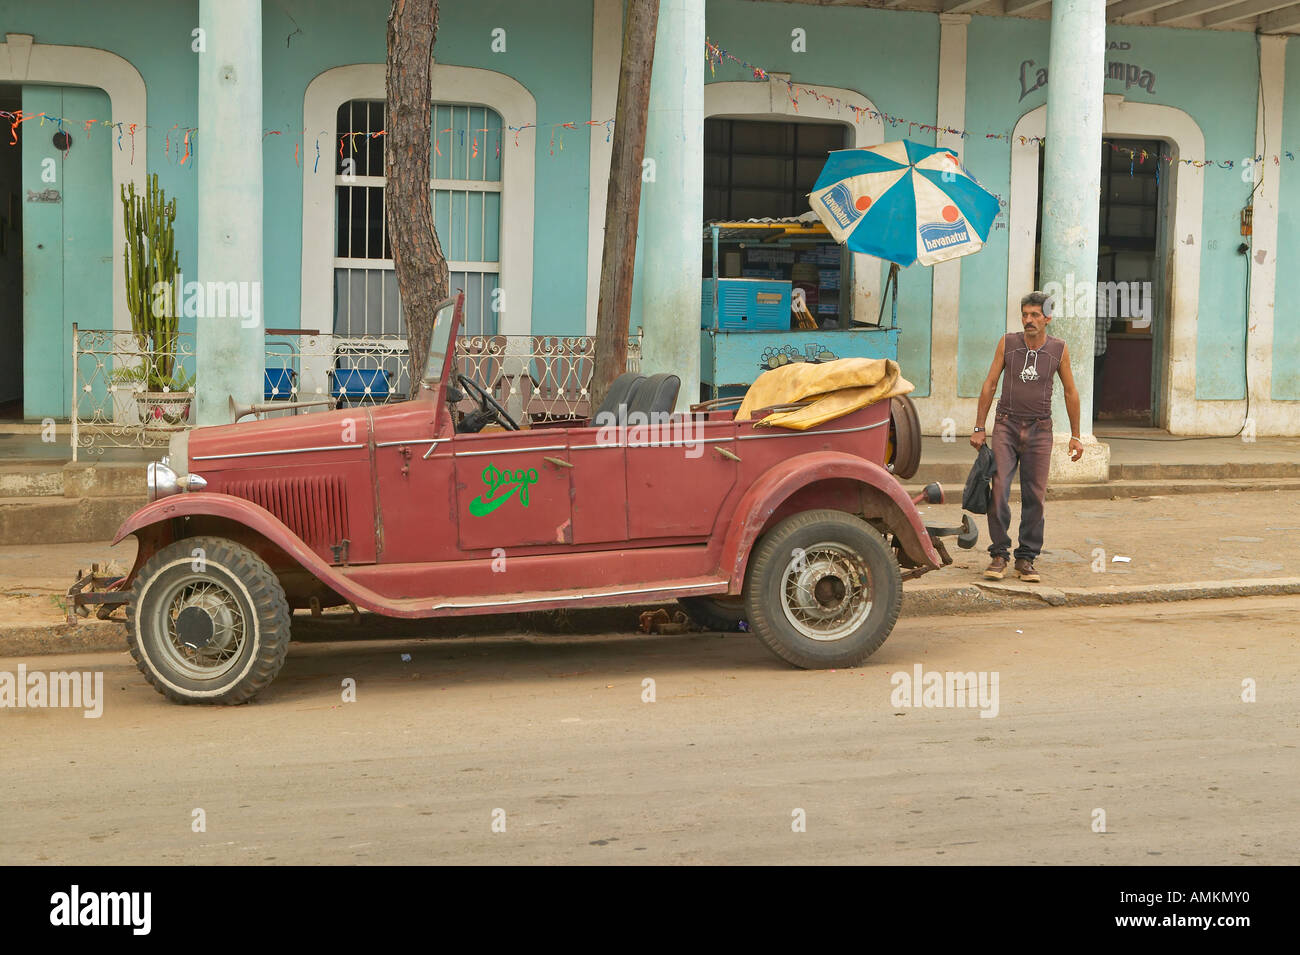 man walking from old stores in rural cuba to old beat up car advertising a restaurant